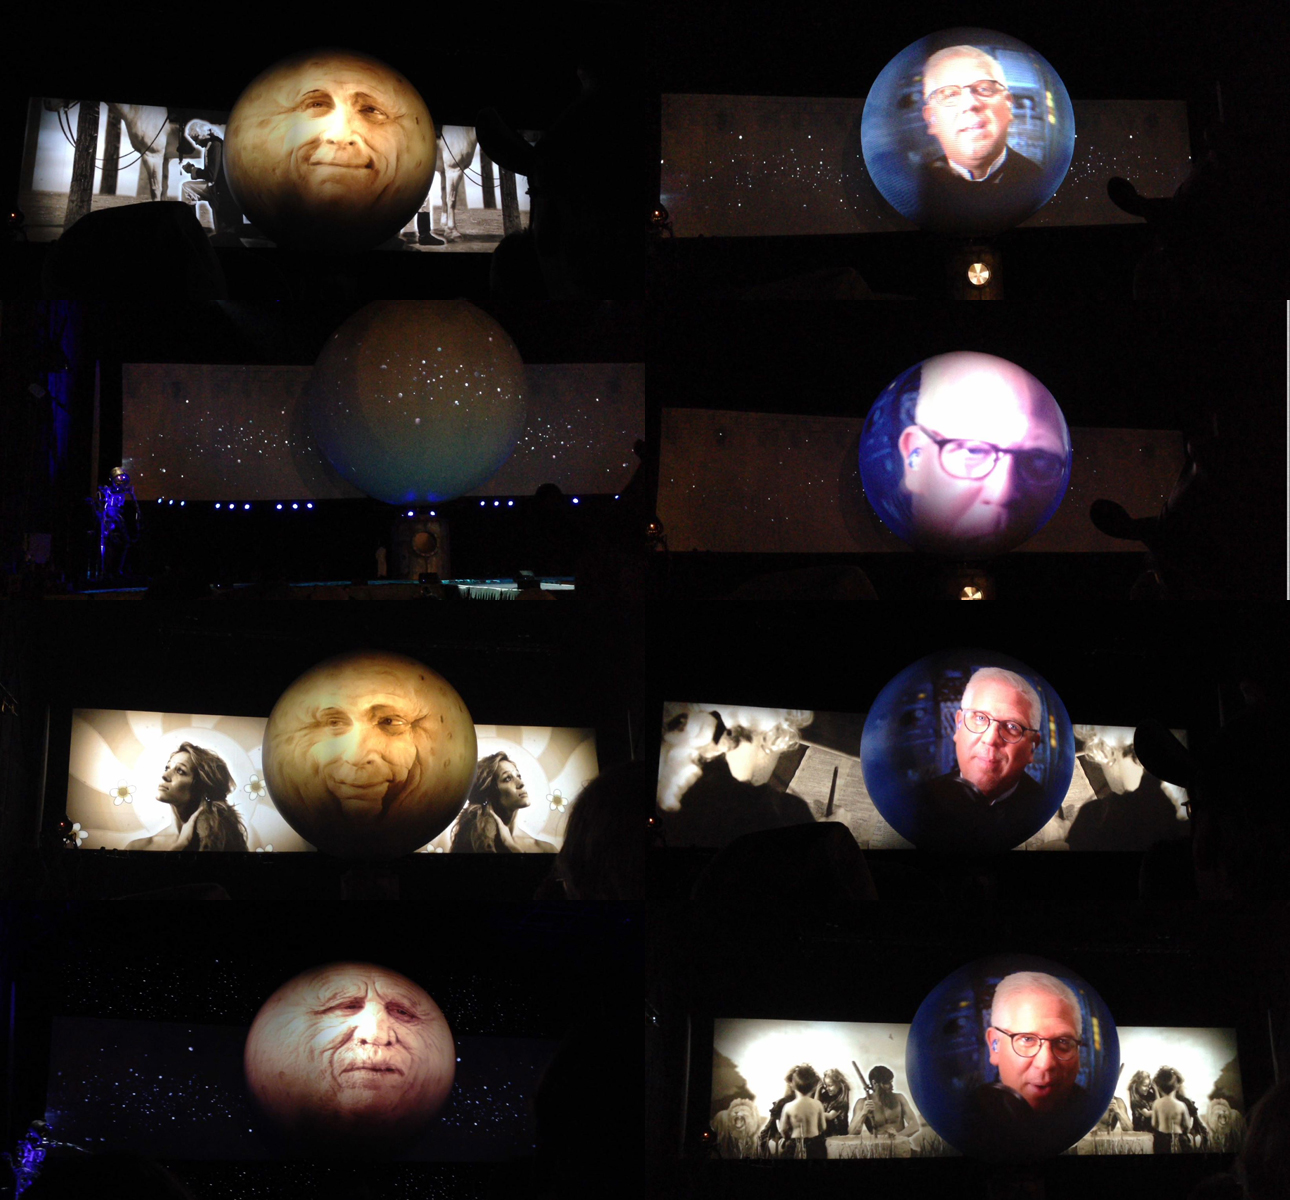 Beck man in the moon collage